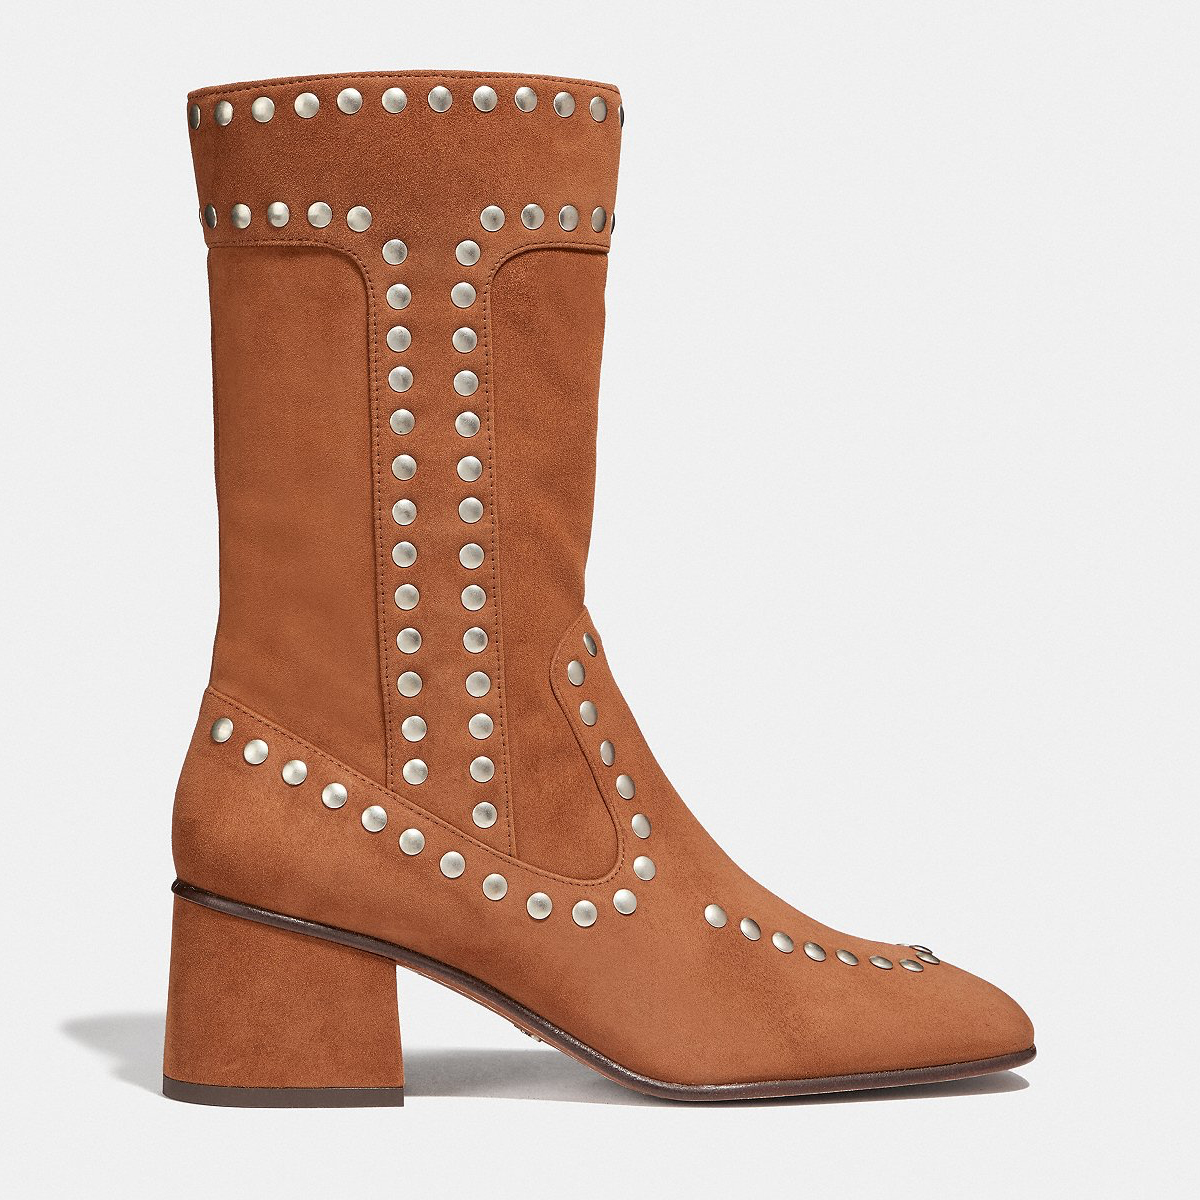 Coach Bootie With Rivets